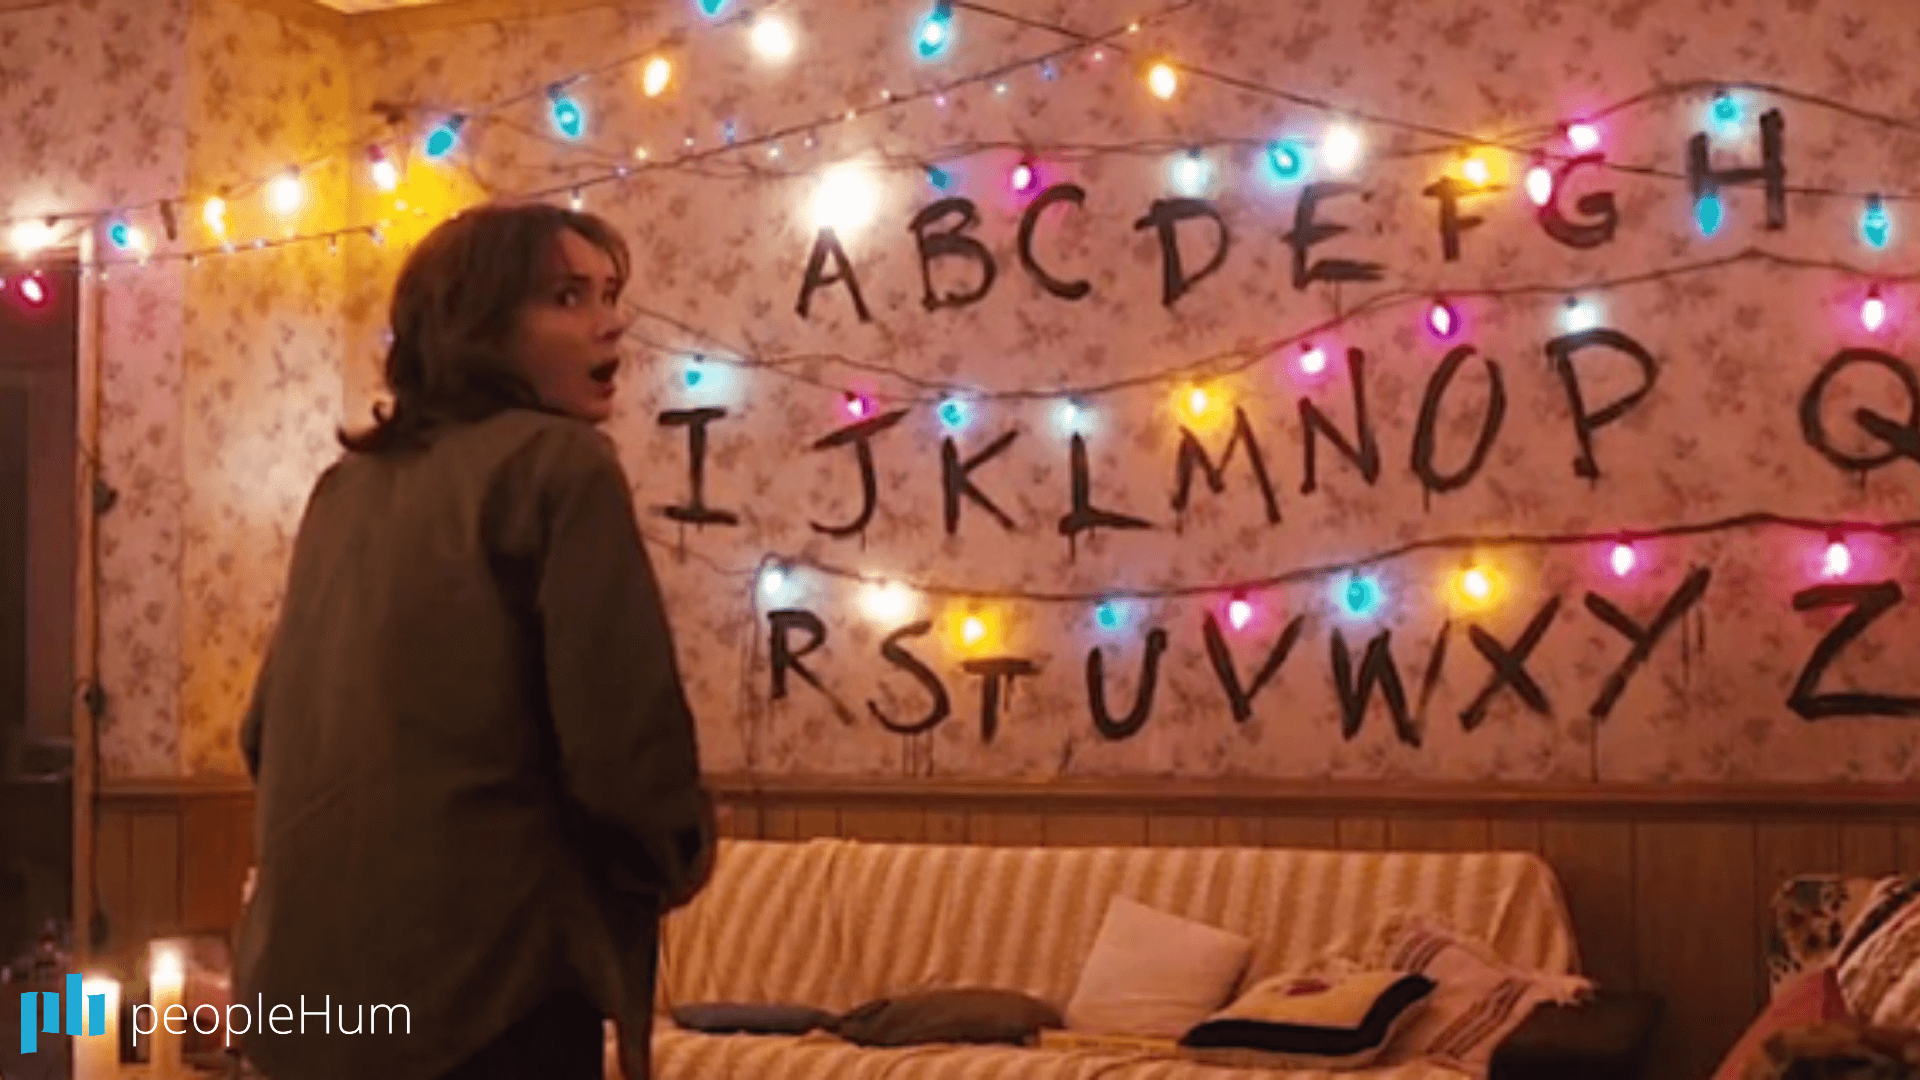 6 stranger things in Talent Management Systems